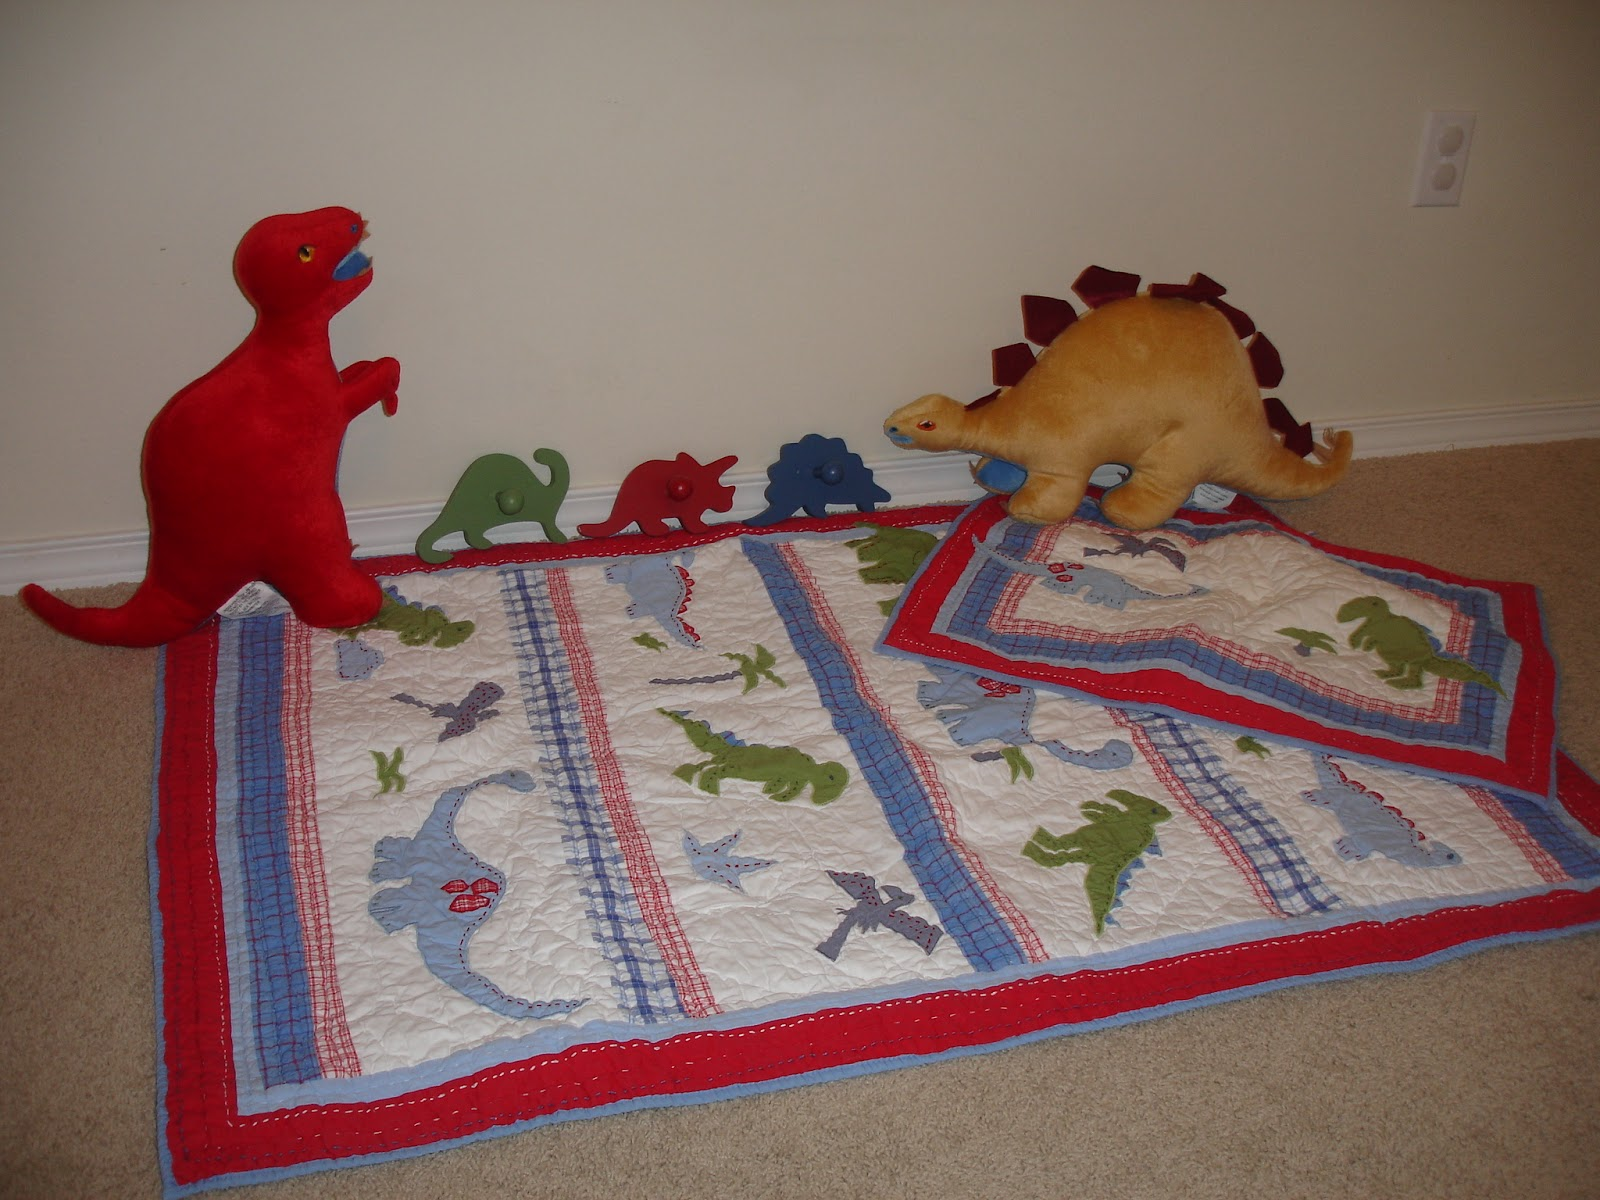 dinosaur bedroom set 30 for sale in corinth ms